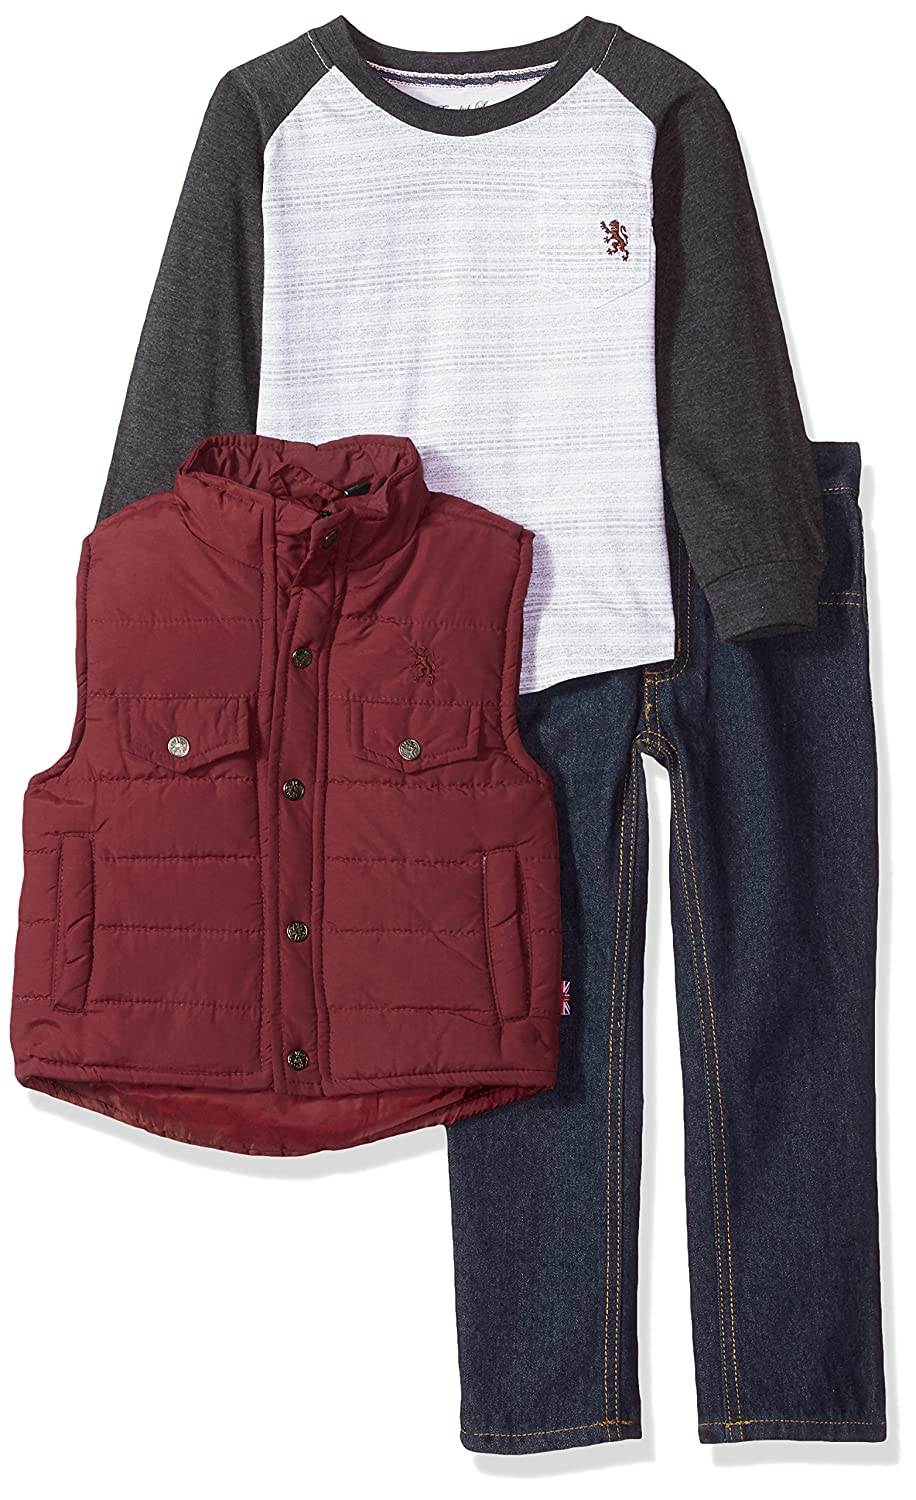 English Laundry Boys' Vest, T-Shirt and Pant Set (More Styles Available)